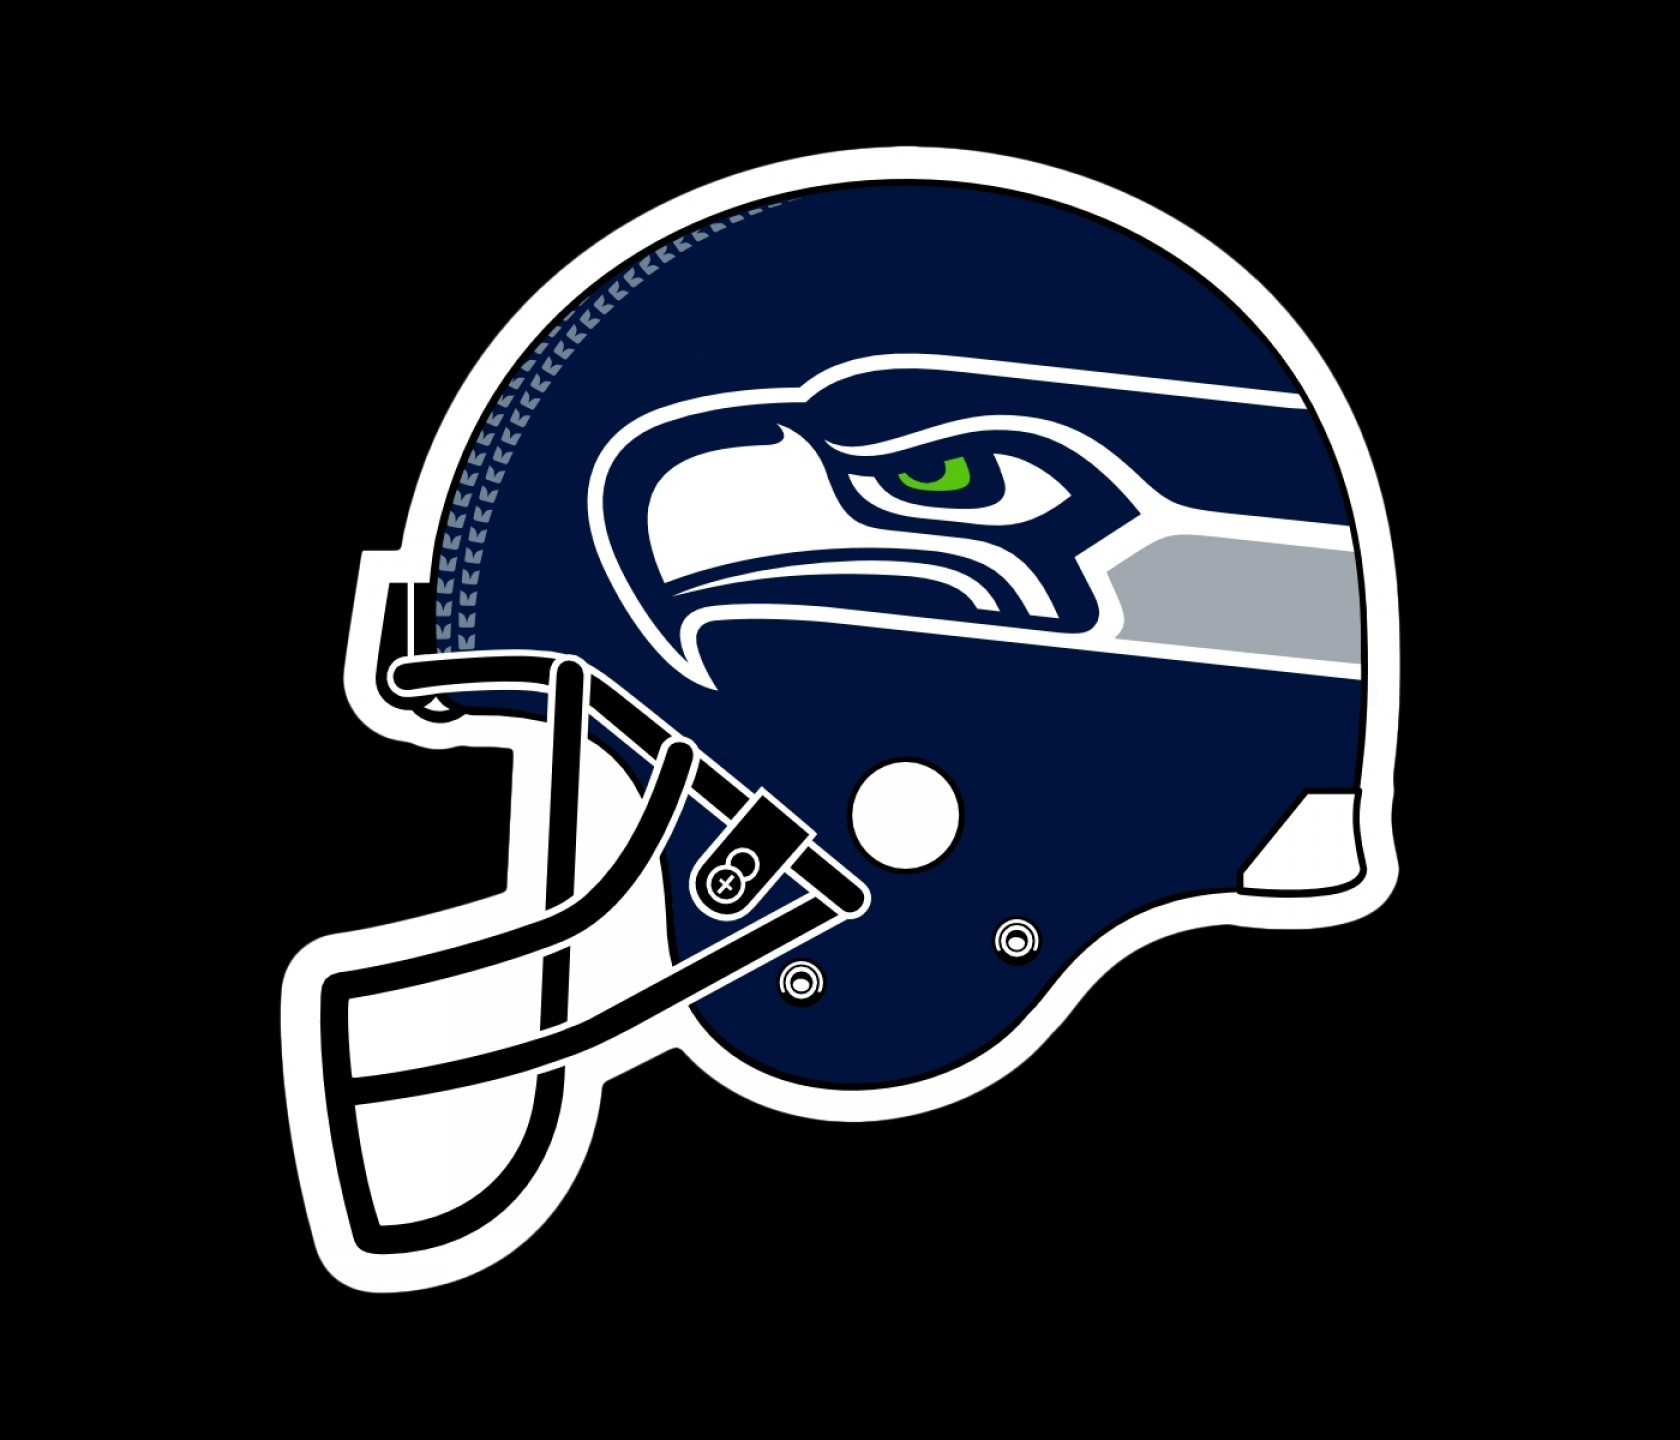 Seahawks Helmet Vector: Svg Royalty Free Seattle Seahawks Logo Png Transparent Vector Freebie